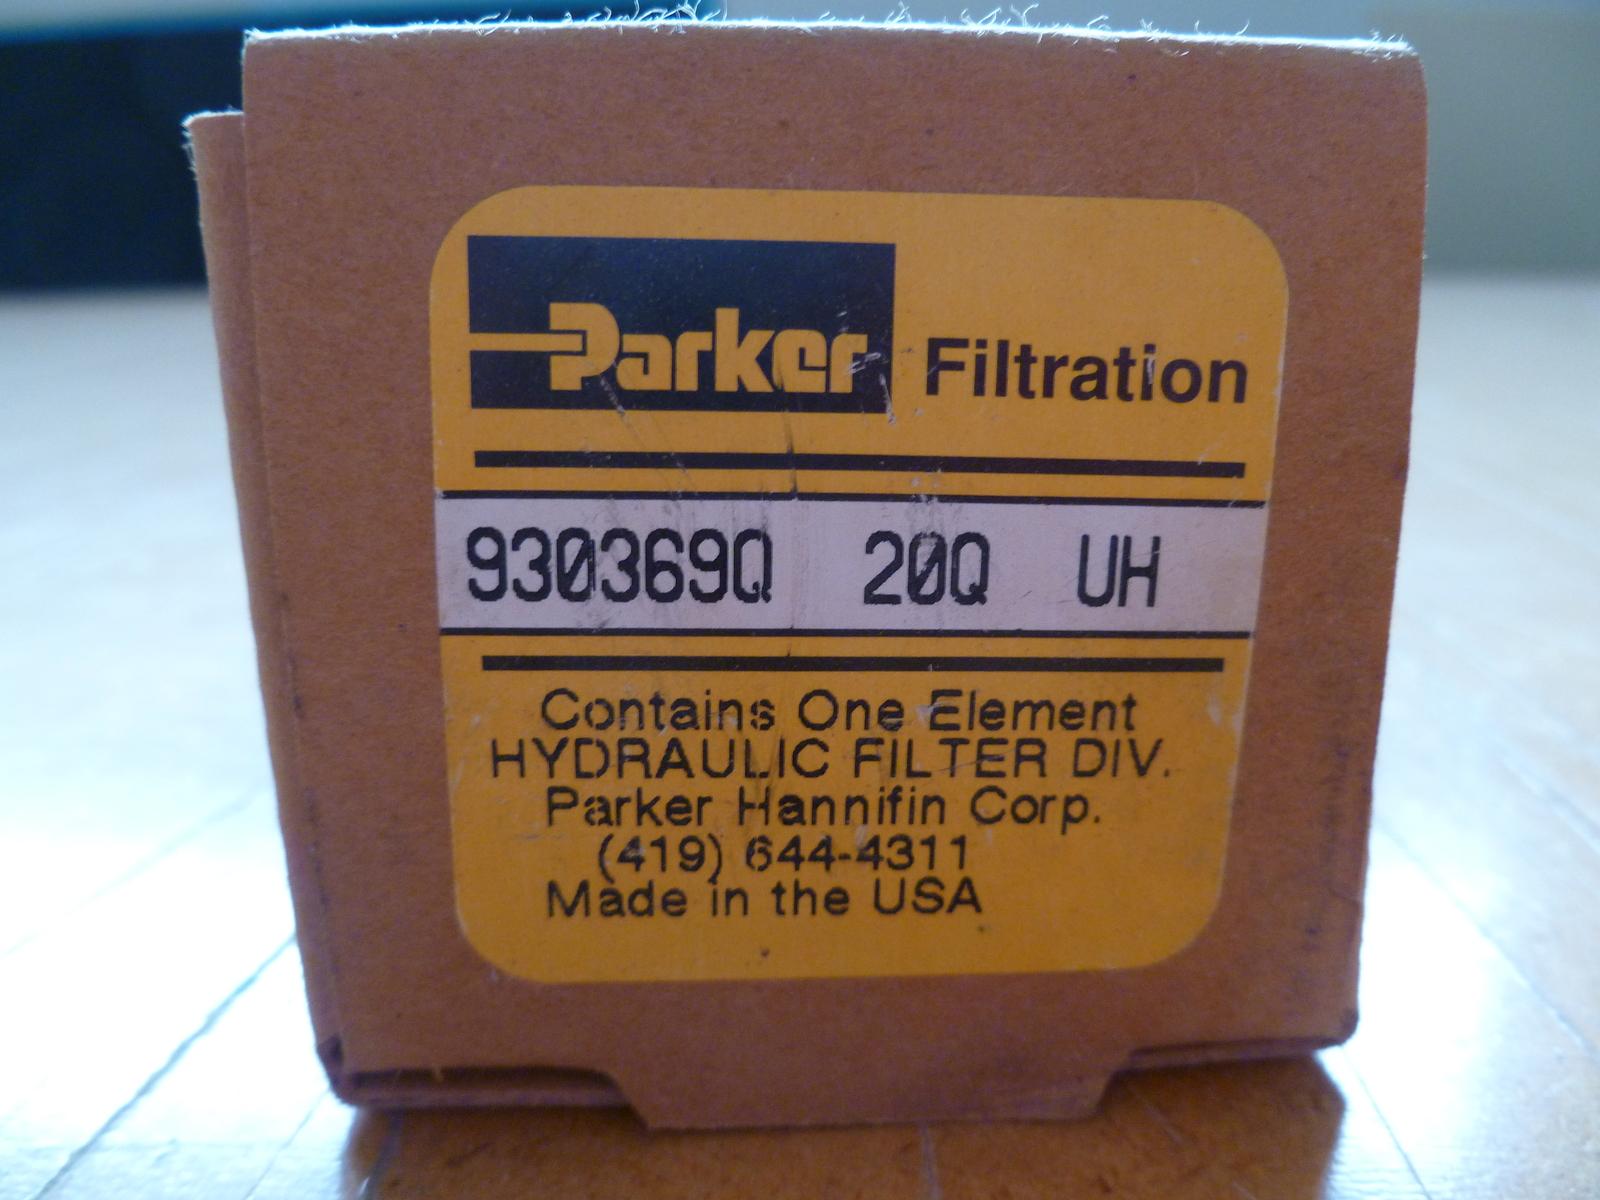 Parker Filtration 930369Q 20Q UH Hydraulic and 21 similar items